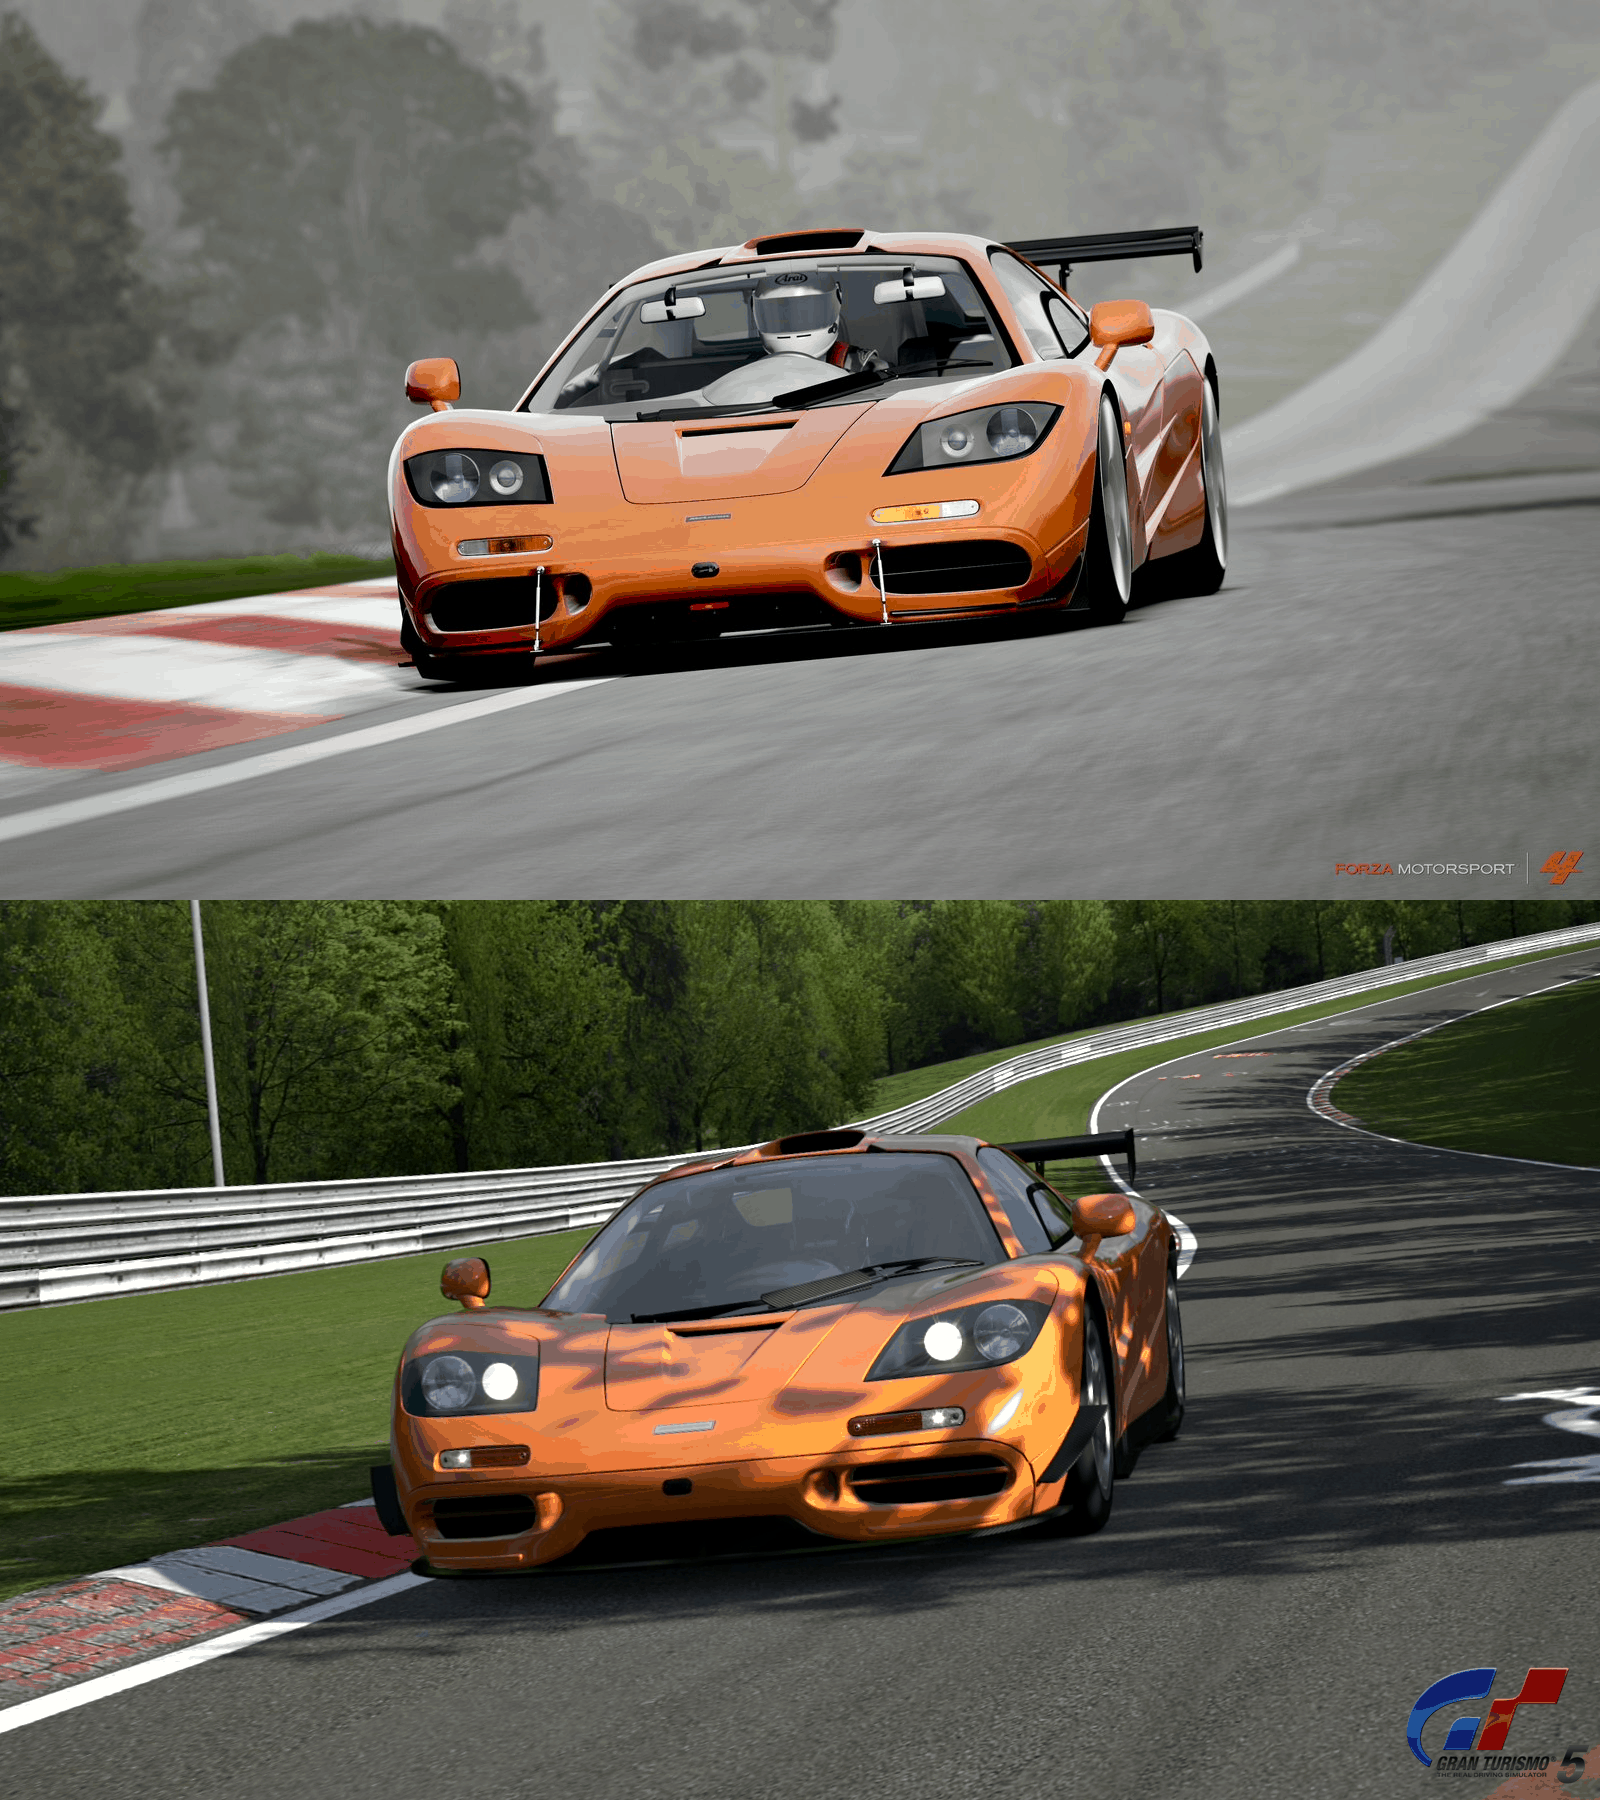 forza_motorsport_4_vs_gran_turismo_5_by_angelneo107-d4uhlev